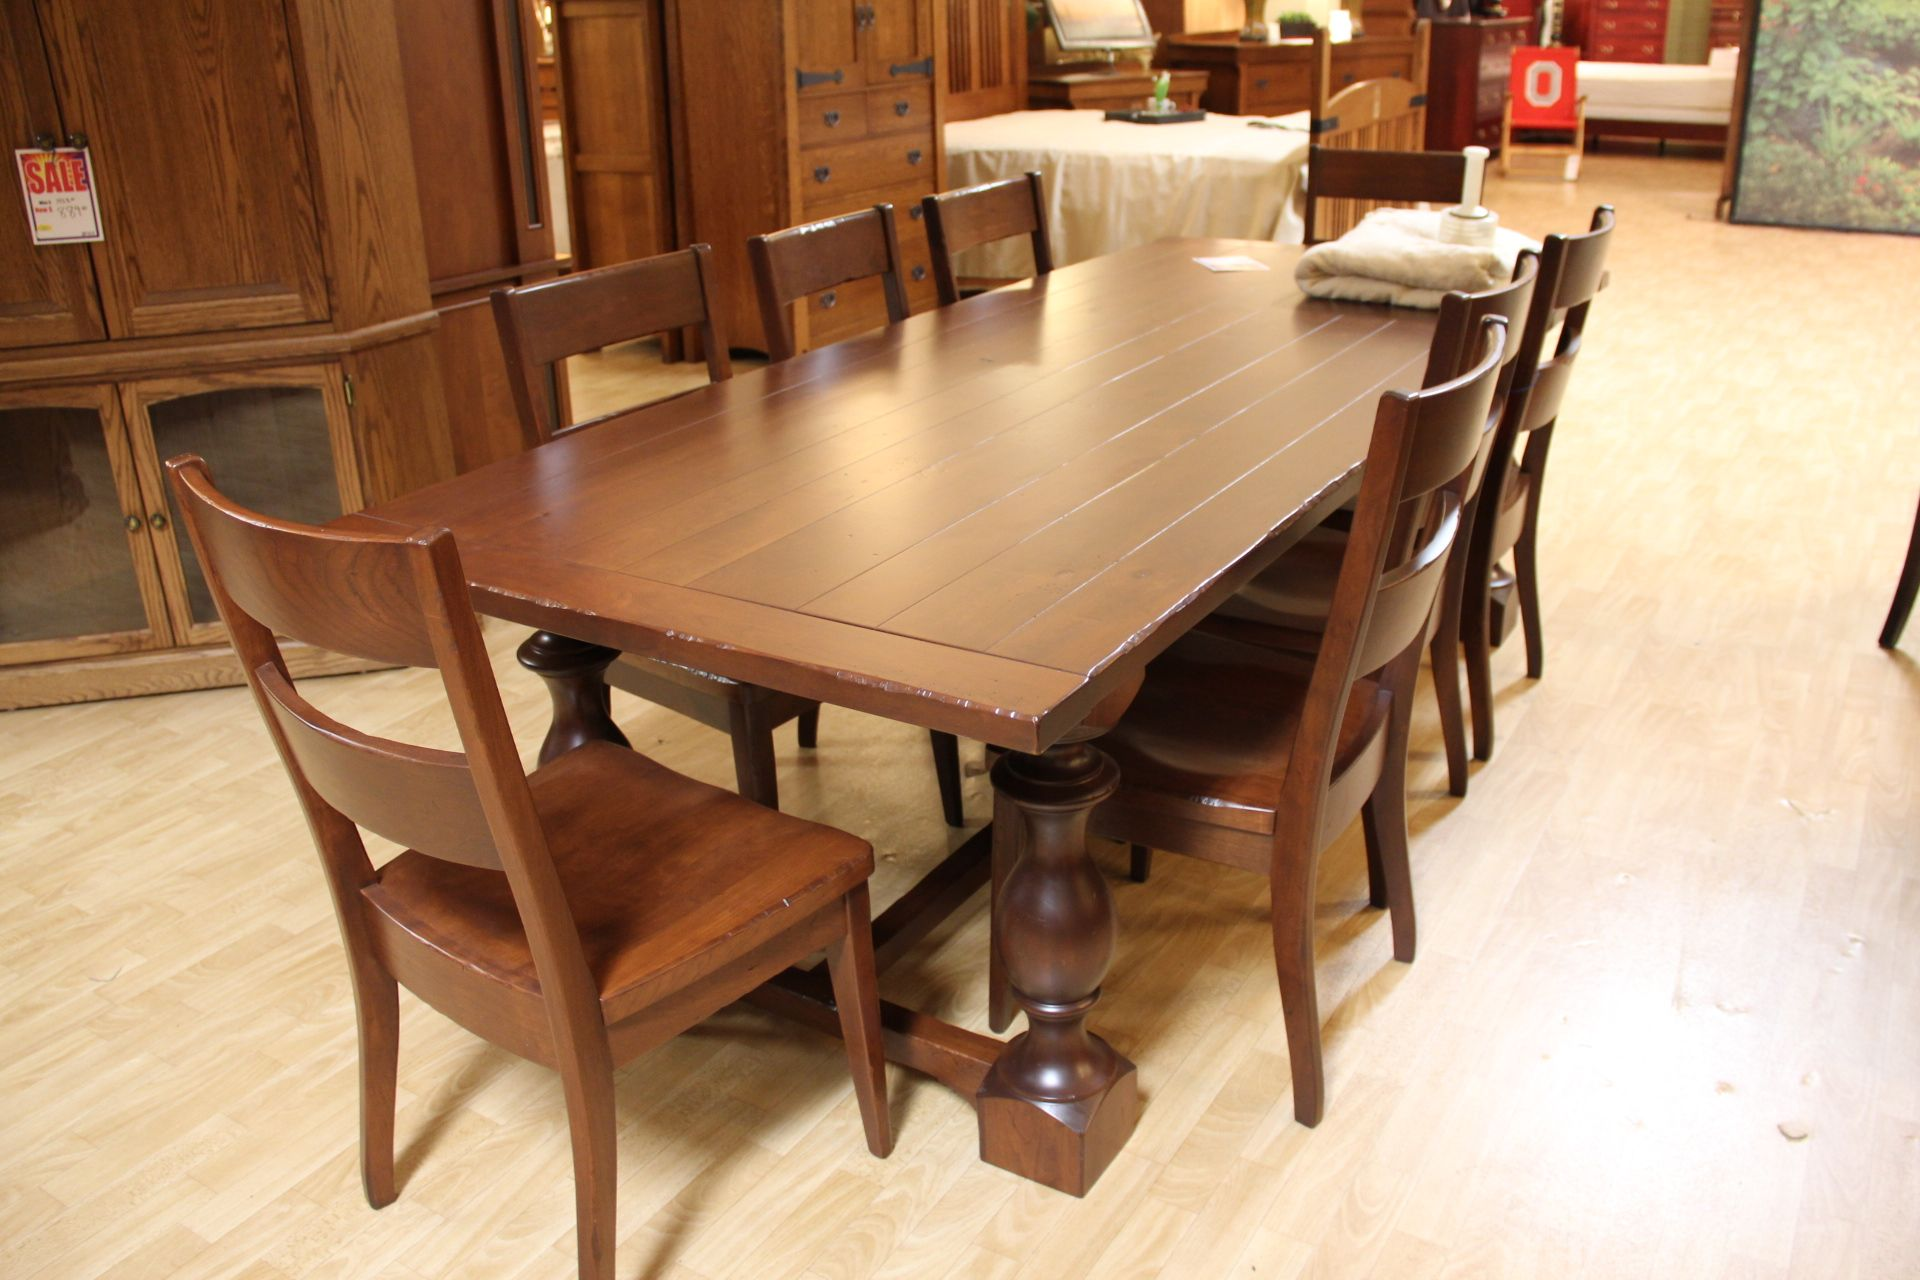 Solid Wood Table And Chairs Gallery Furniture Furniture Solid Wood Furniture